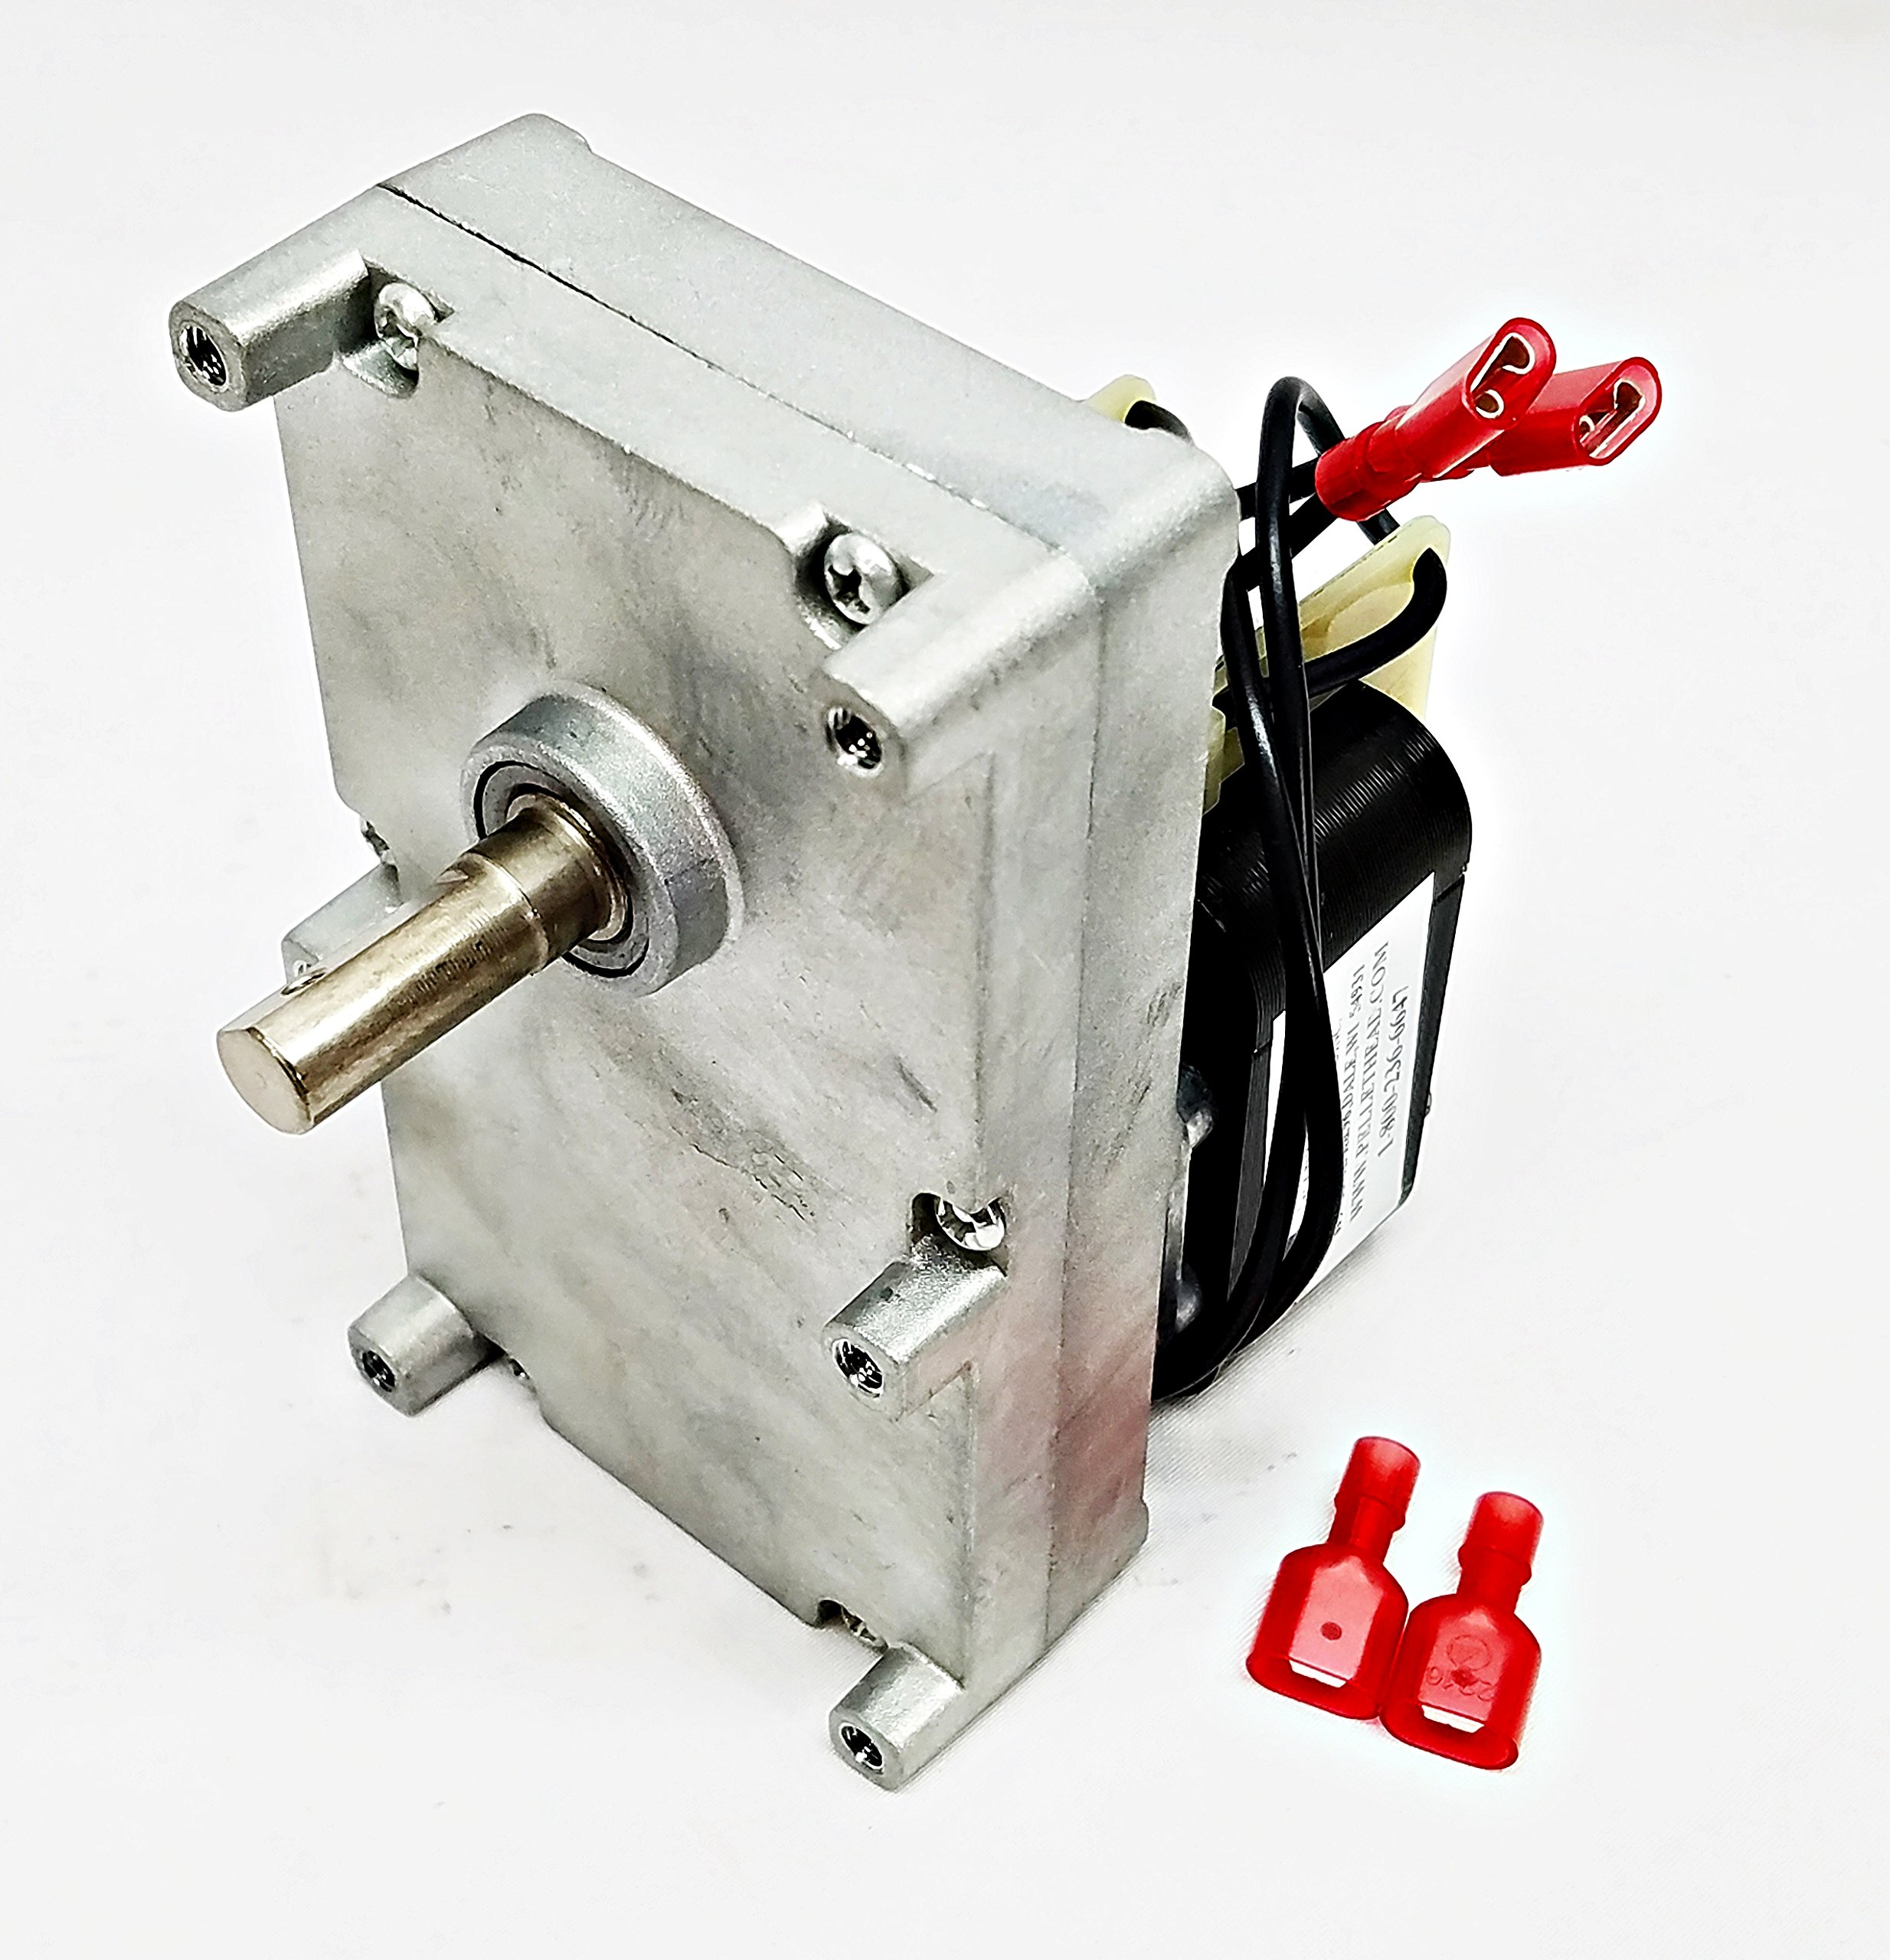 American Harvest 4 RPM Clockwise Auger Feed Motor W/Hole 80456 - XP7004 No Minimum Require! by PelletHead